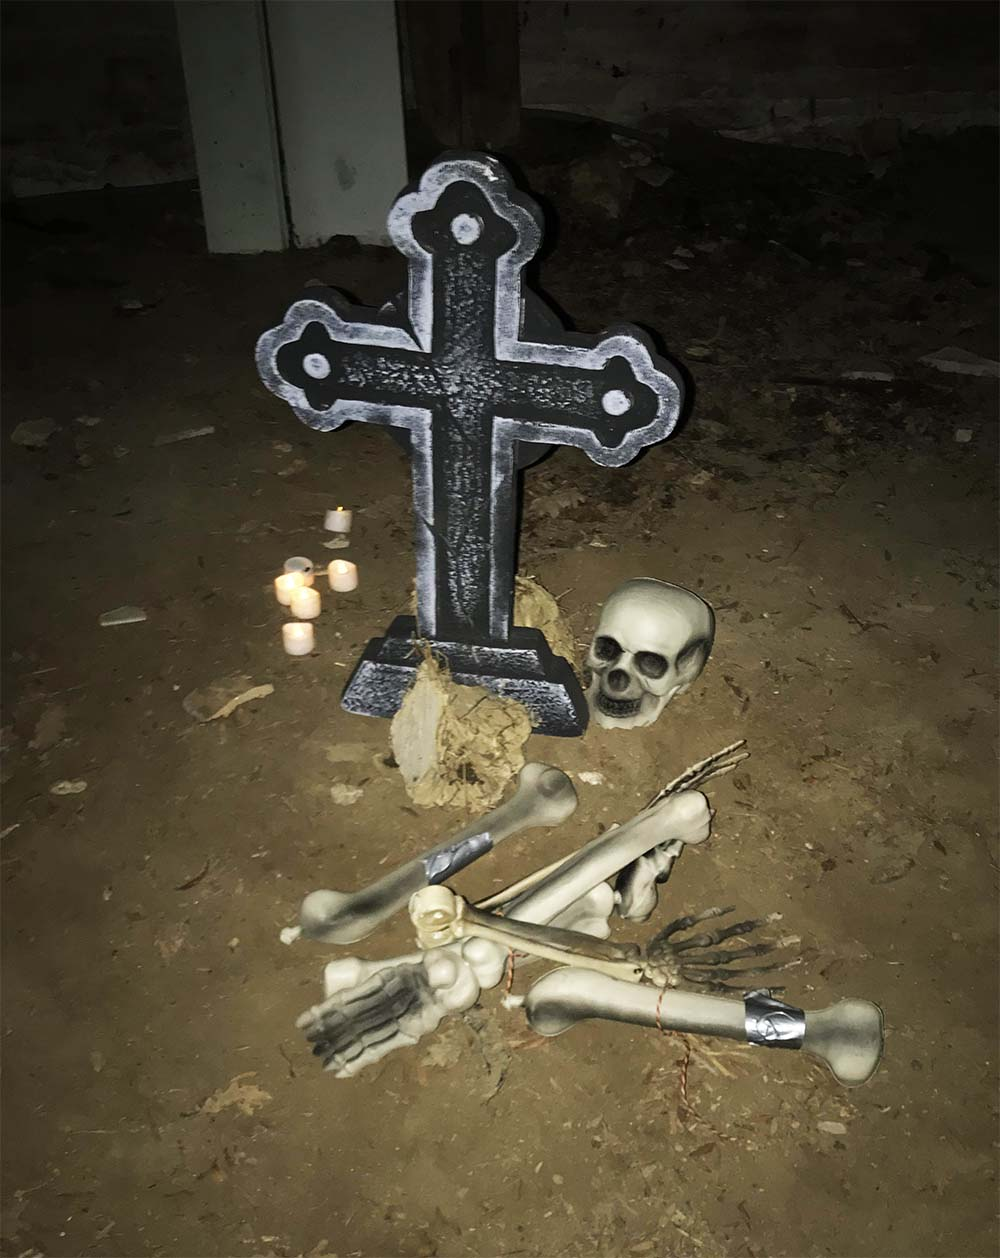 The grave, along with the missing bones the children collected throughout the hunt.